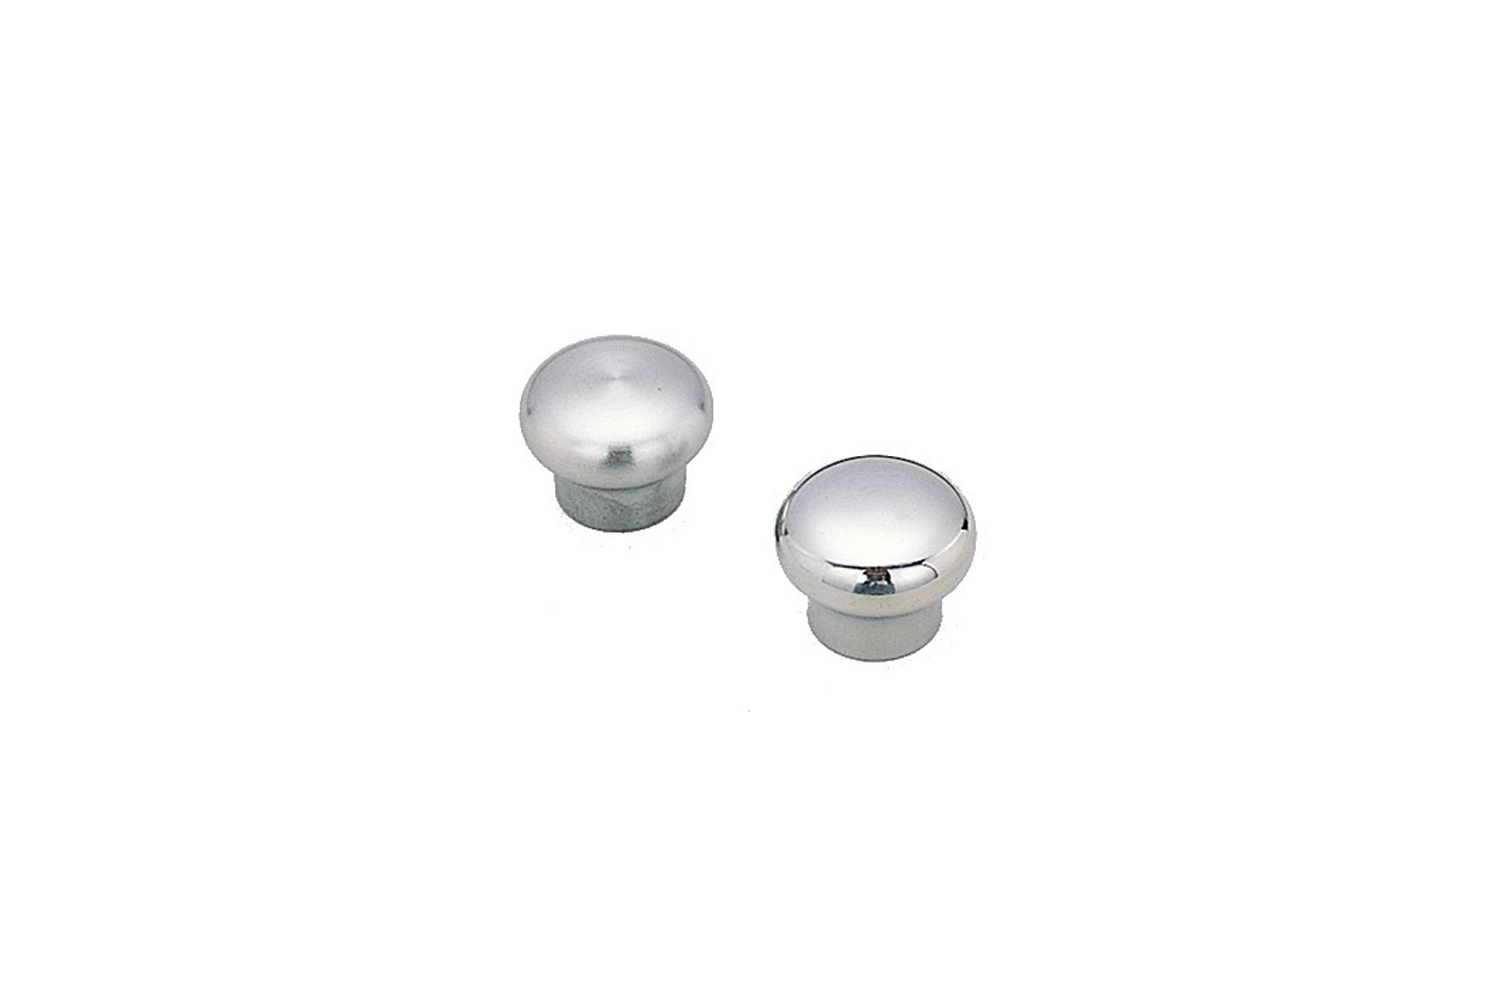 the sugatsune rss stainless steel knob is \$\1\2.33 at alema. 18